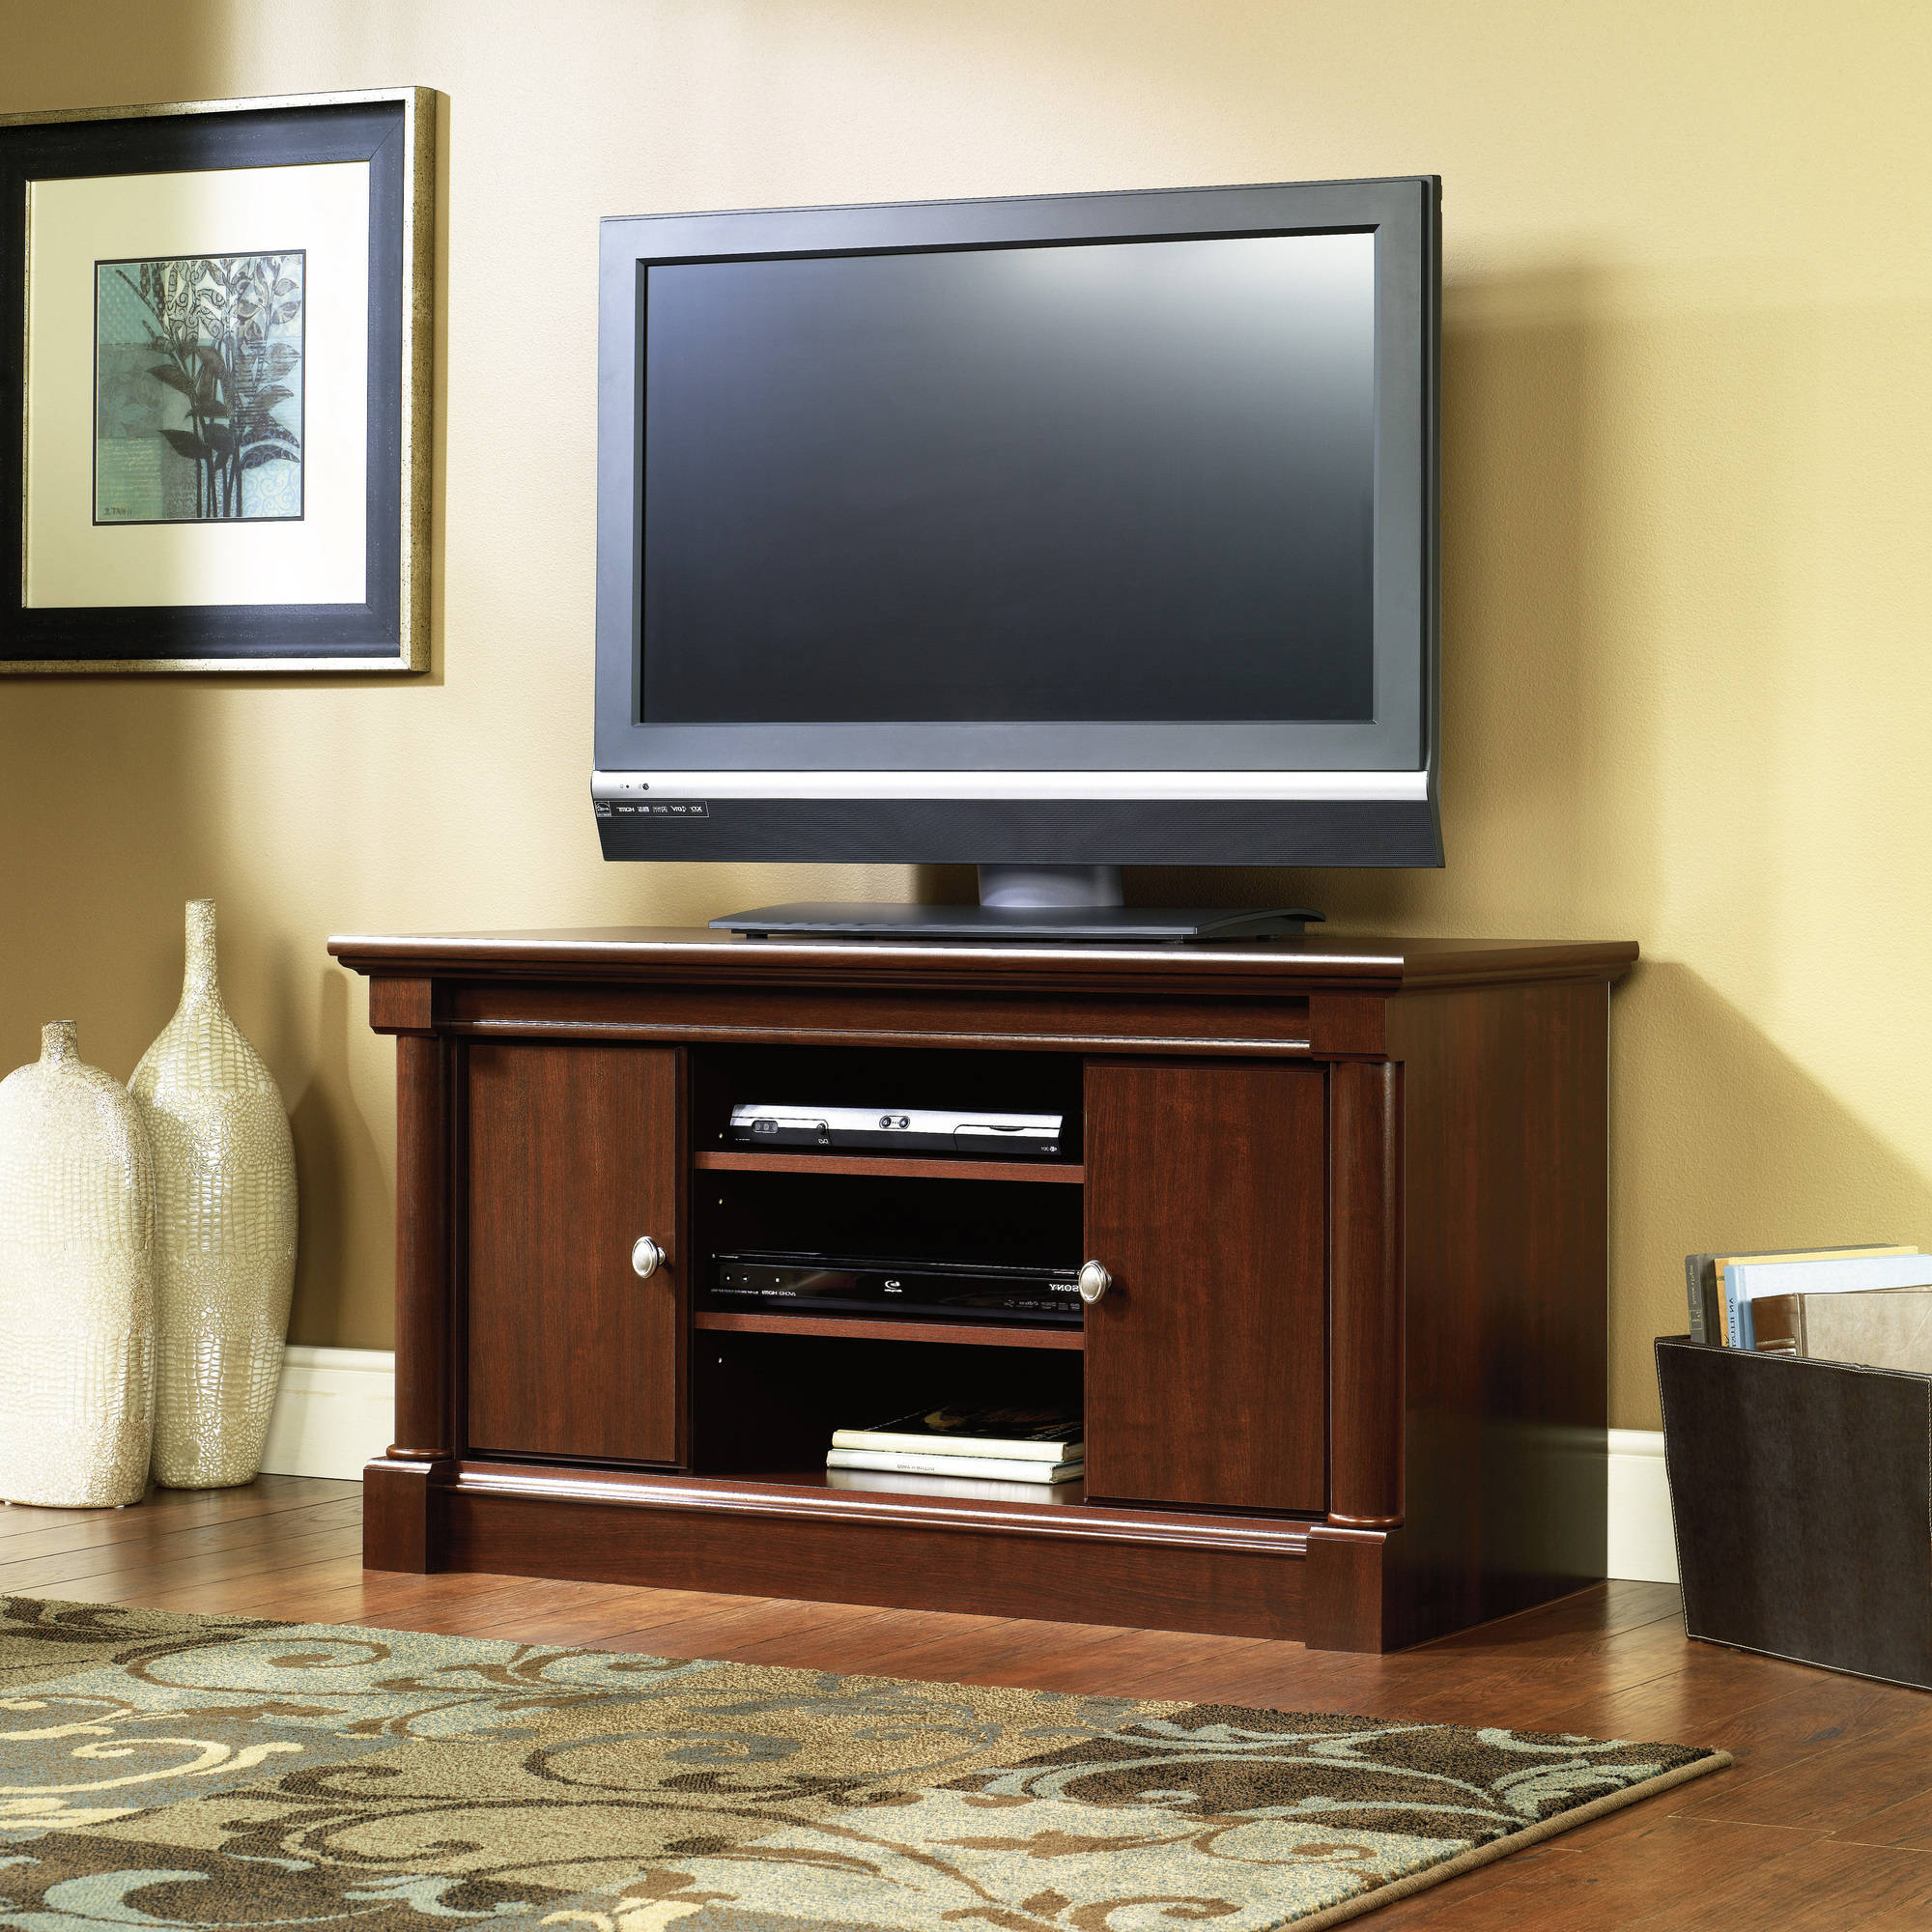 Fashionable Cherry Tv Stand Entertainment Center With Storage Media Furniture Intended For Cherry Wood Tv Stands (View 9 of 20)